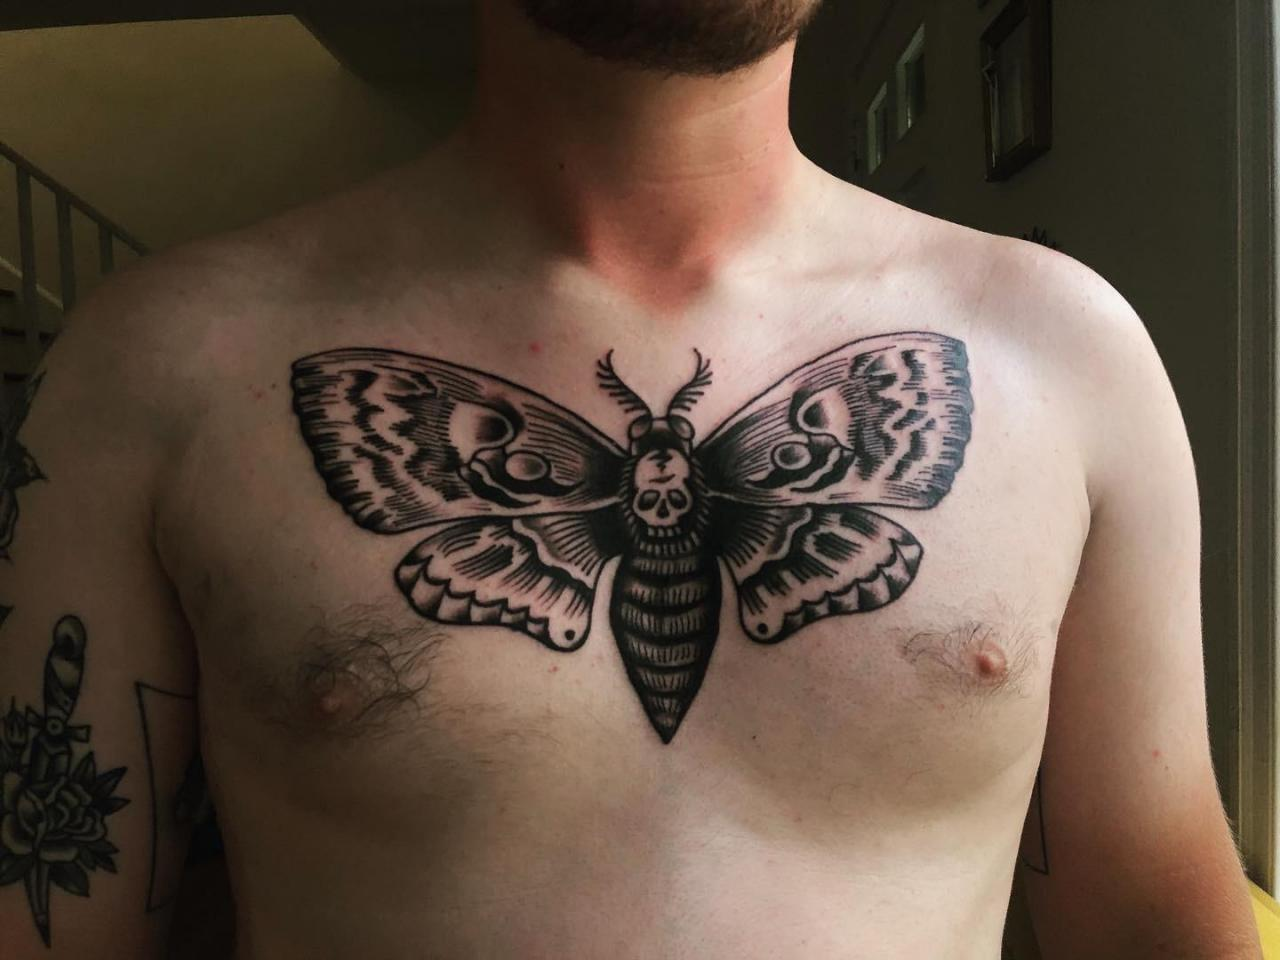 Death's-Head Hawkmoth chest tattoo done yesterday. By Vincent Rizzo at Classic 13 in Birmingham AL